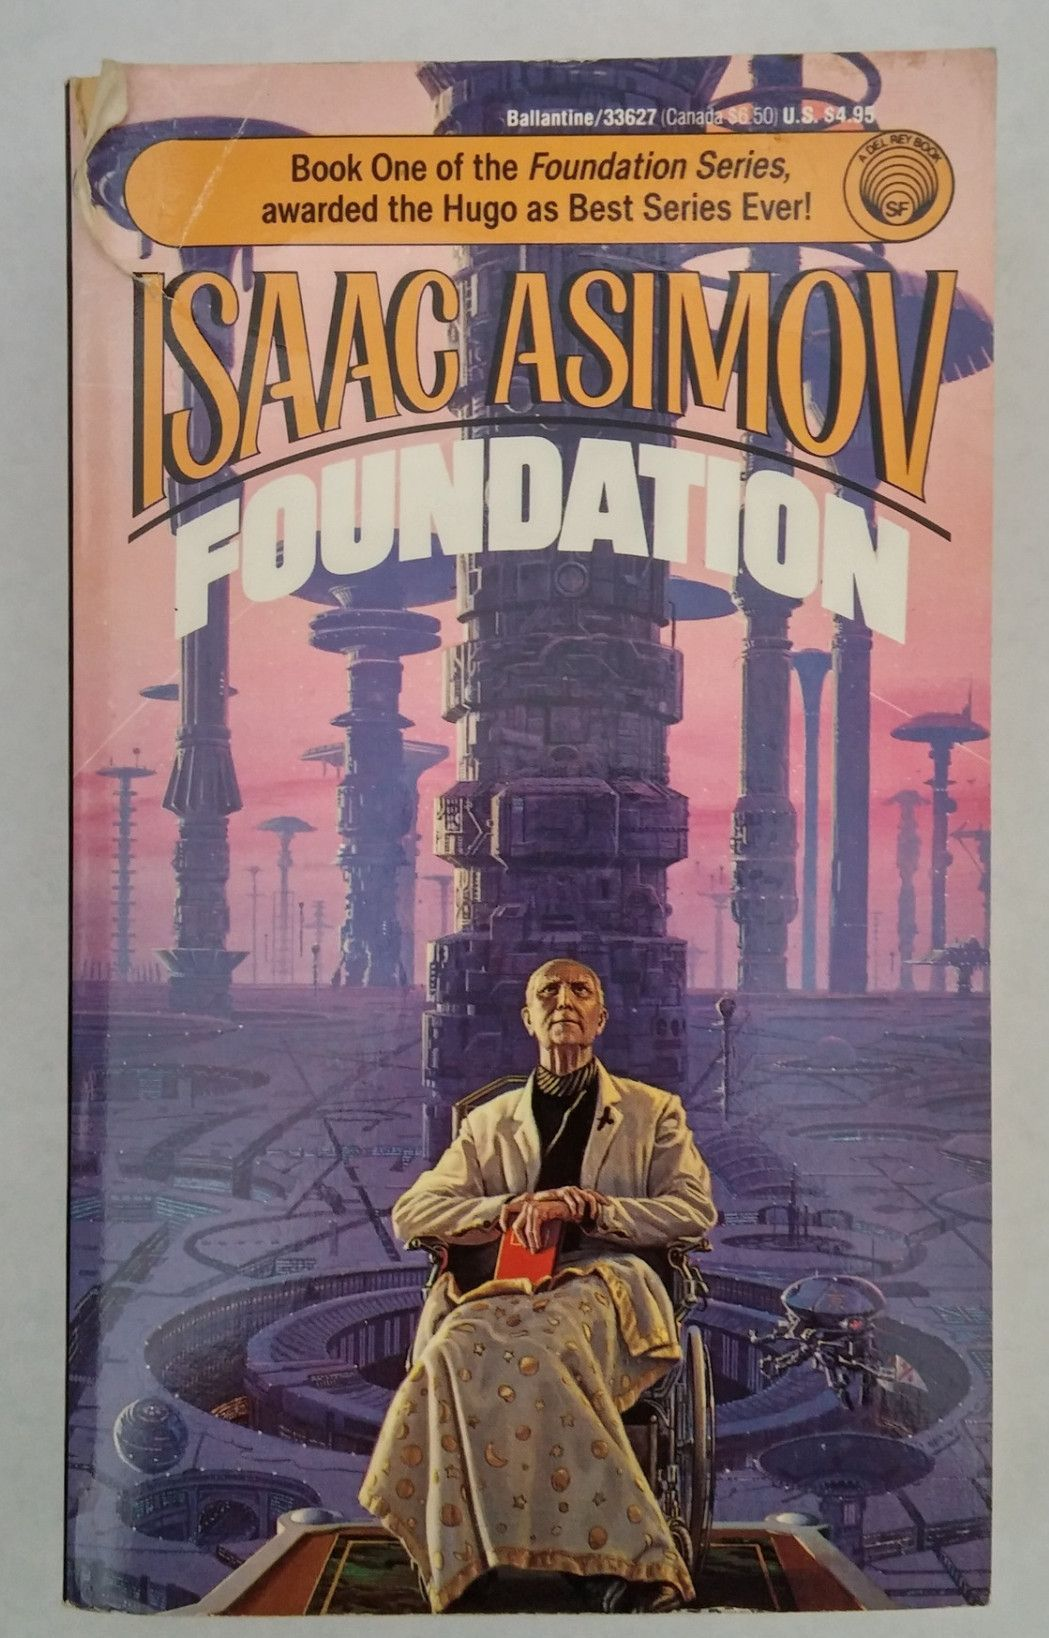 Foundation -- Isaac Asimov | Science fiction books, Science ...